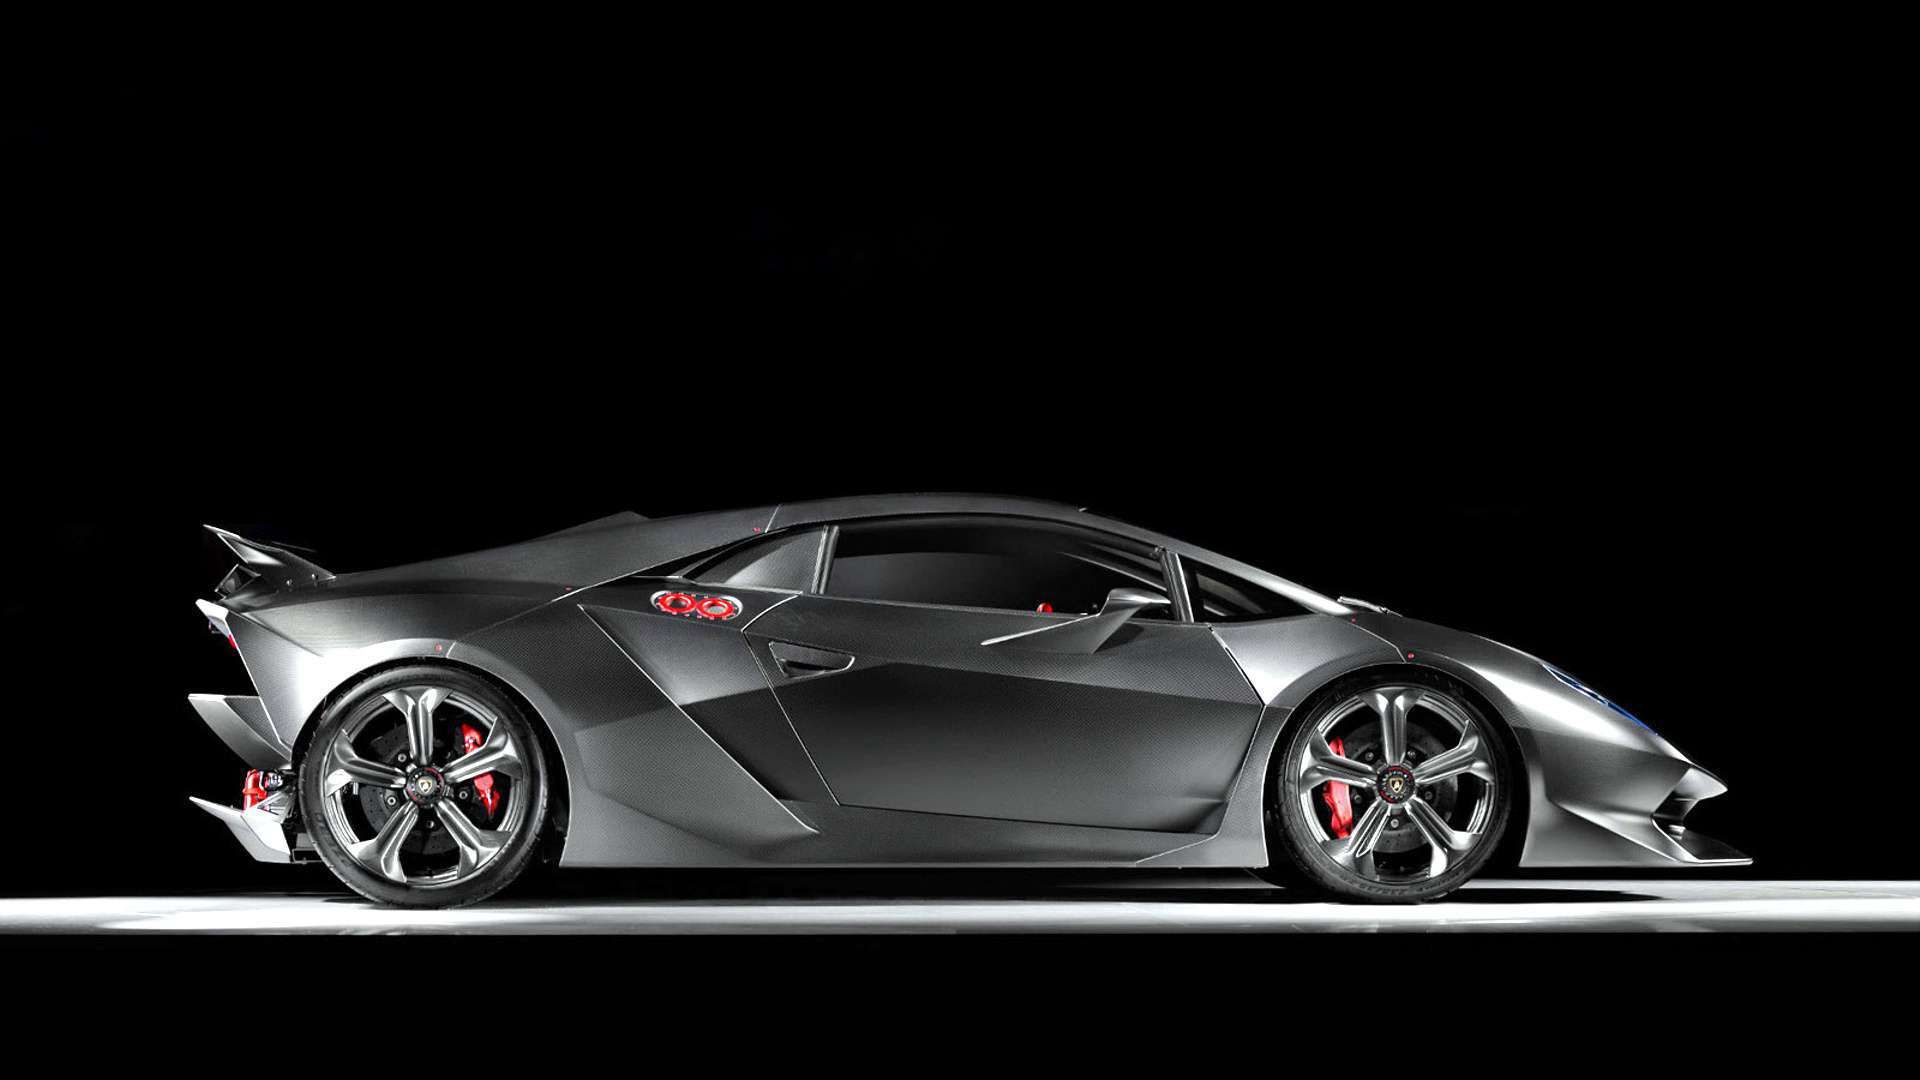 Marvelous Lamborghini Sesto Elemento   Google Search